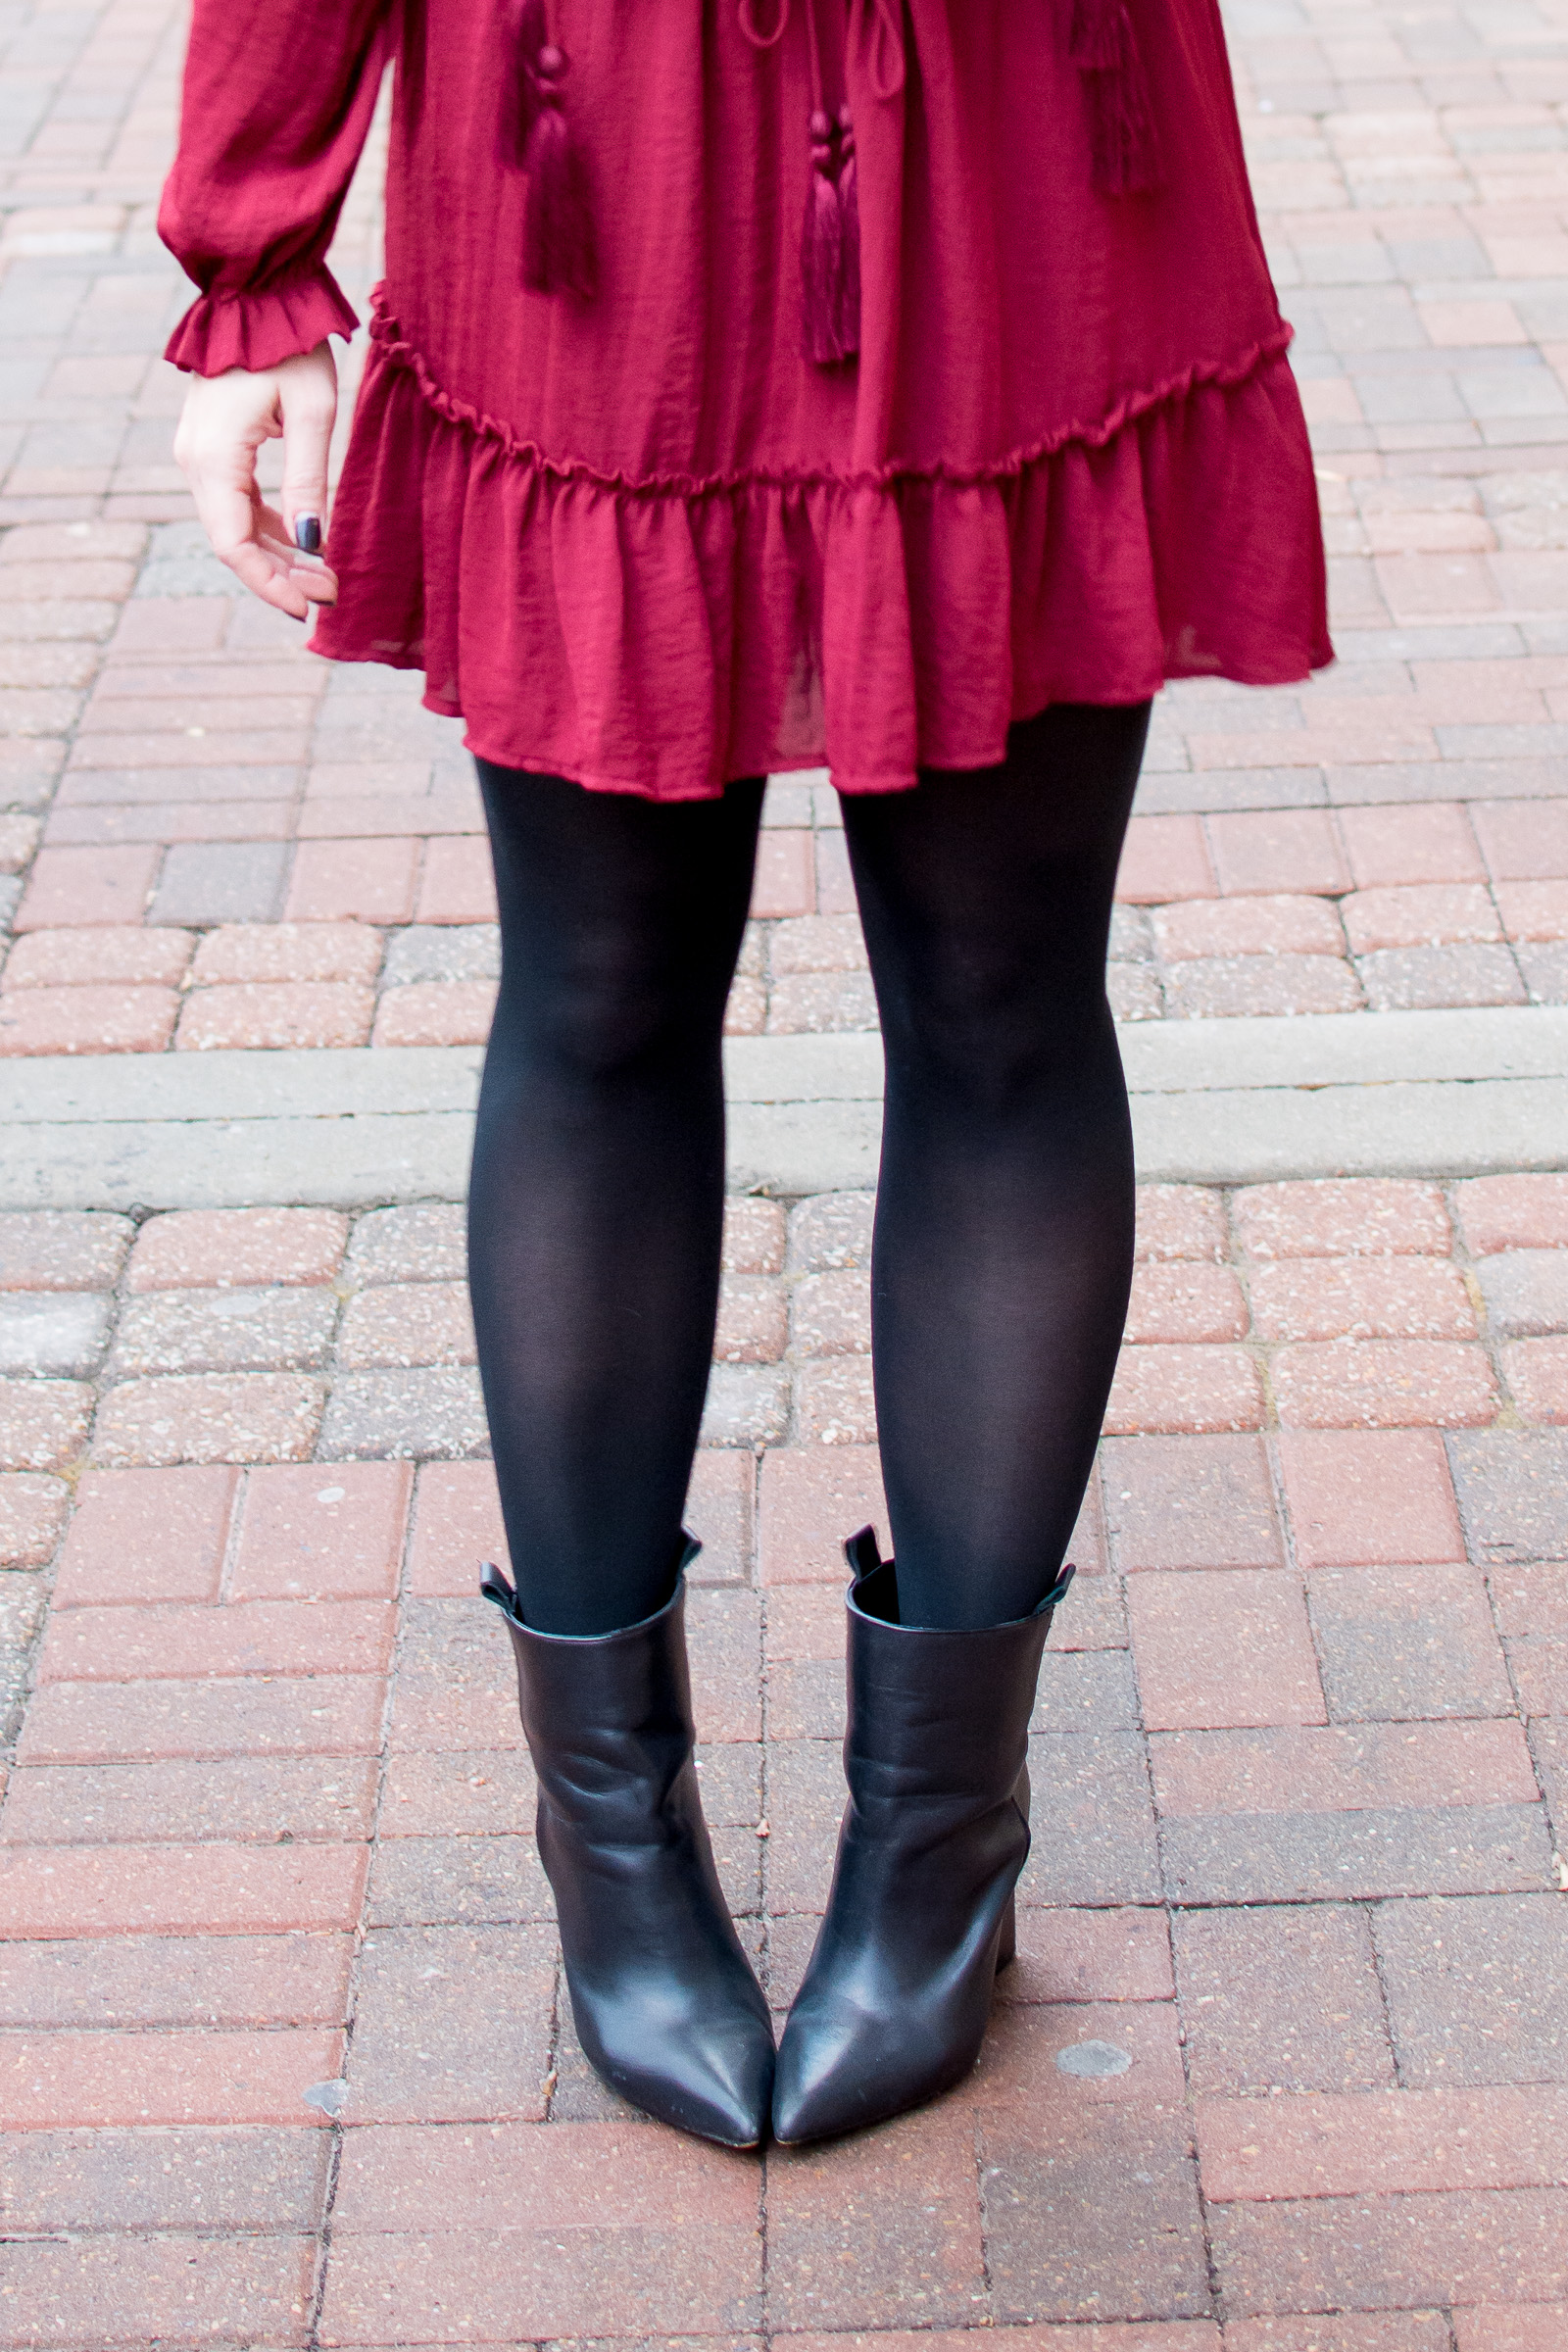 Ashley from LSR sharing a valentine's day outfit in a red dress, black tights, and black pointed toe boots